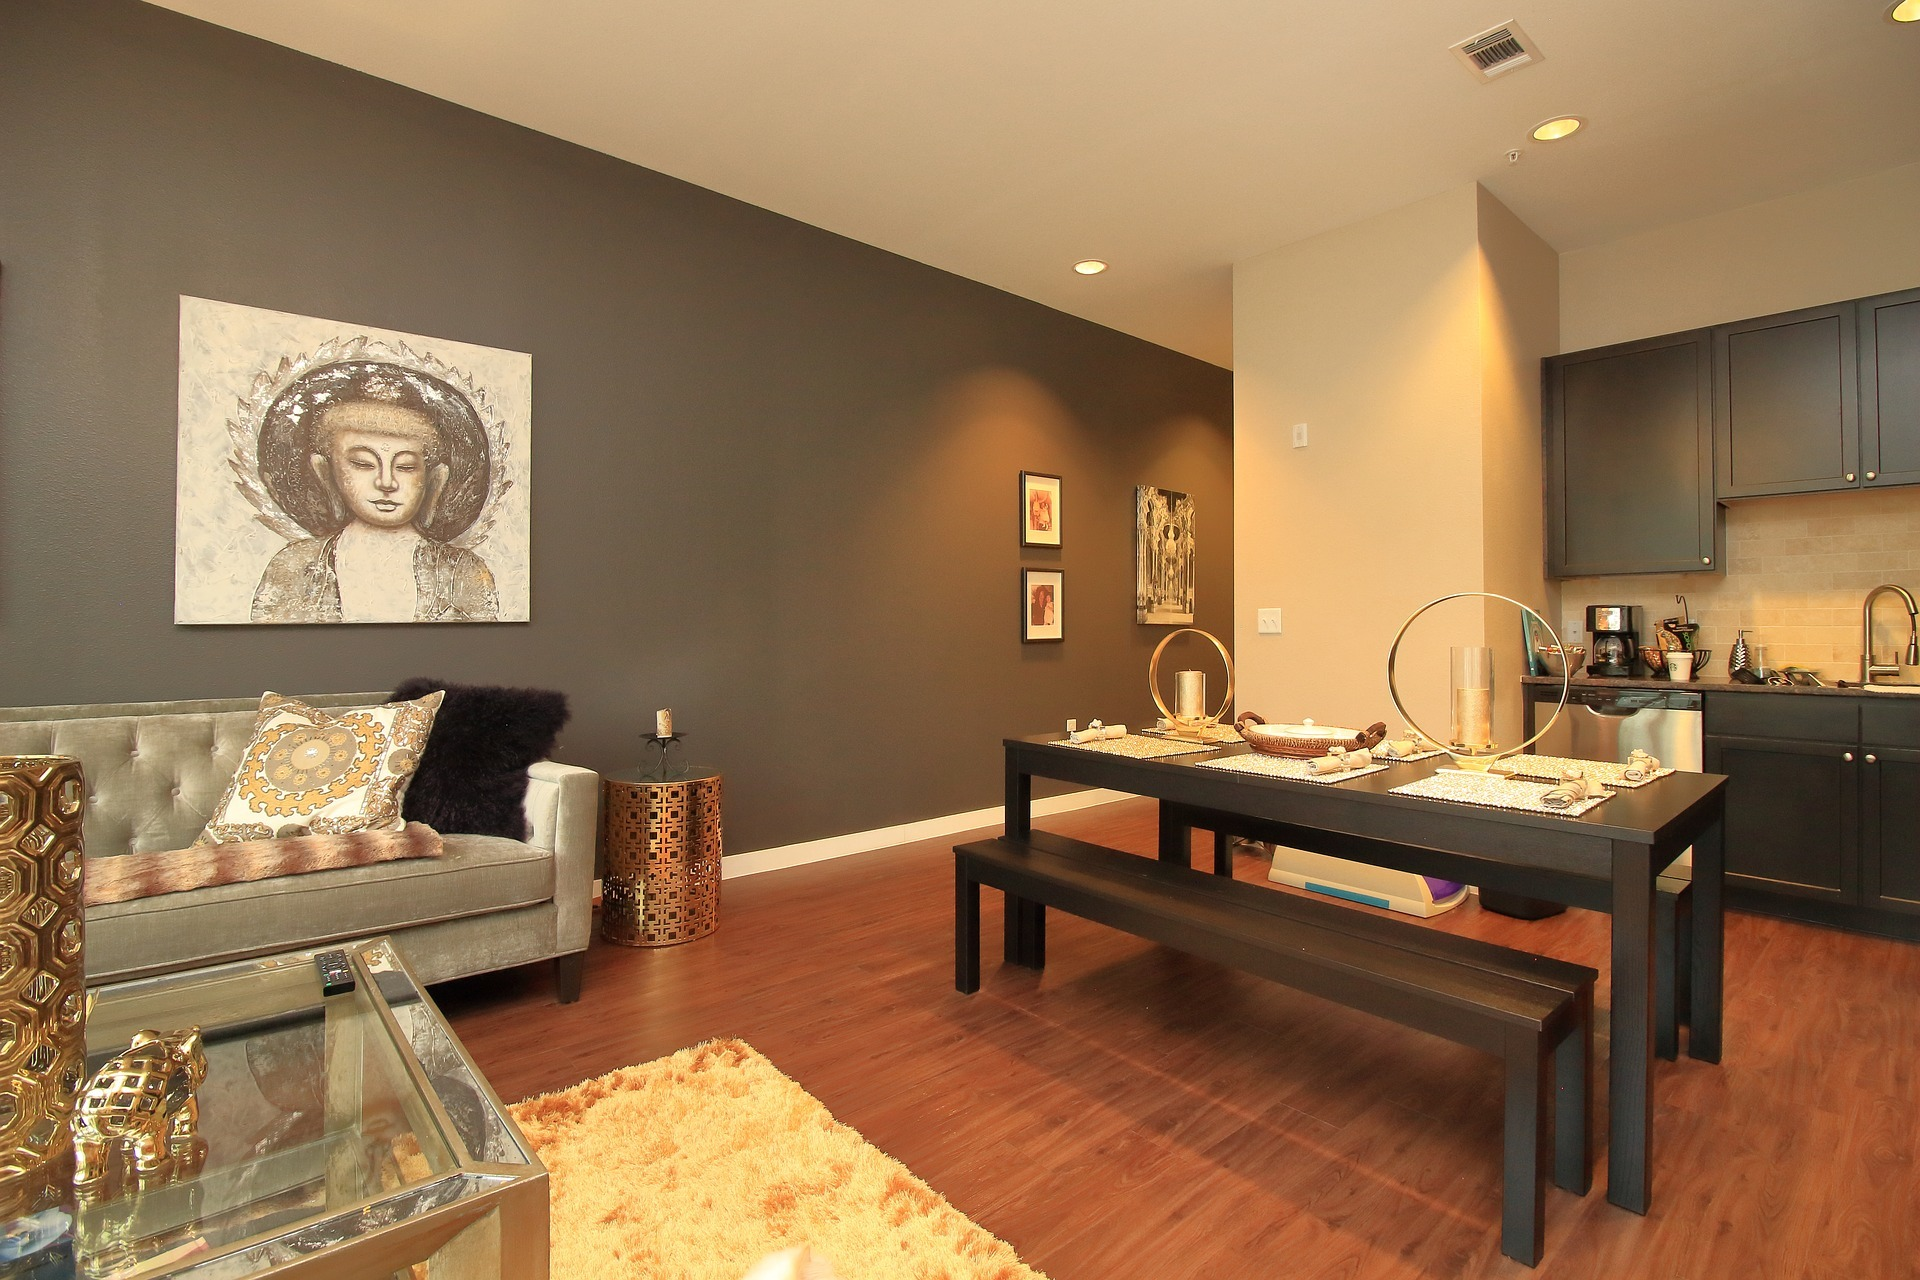 content_property-staging-2855944_1920.jpg